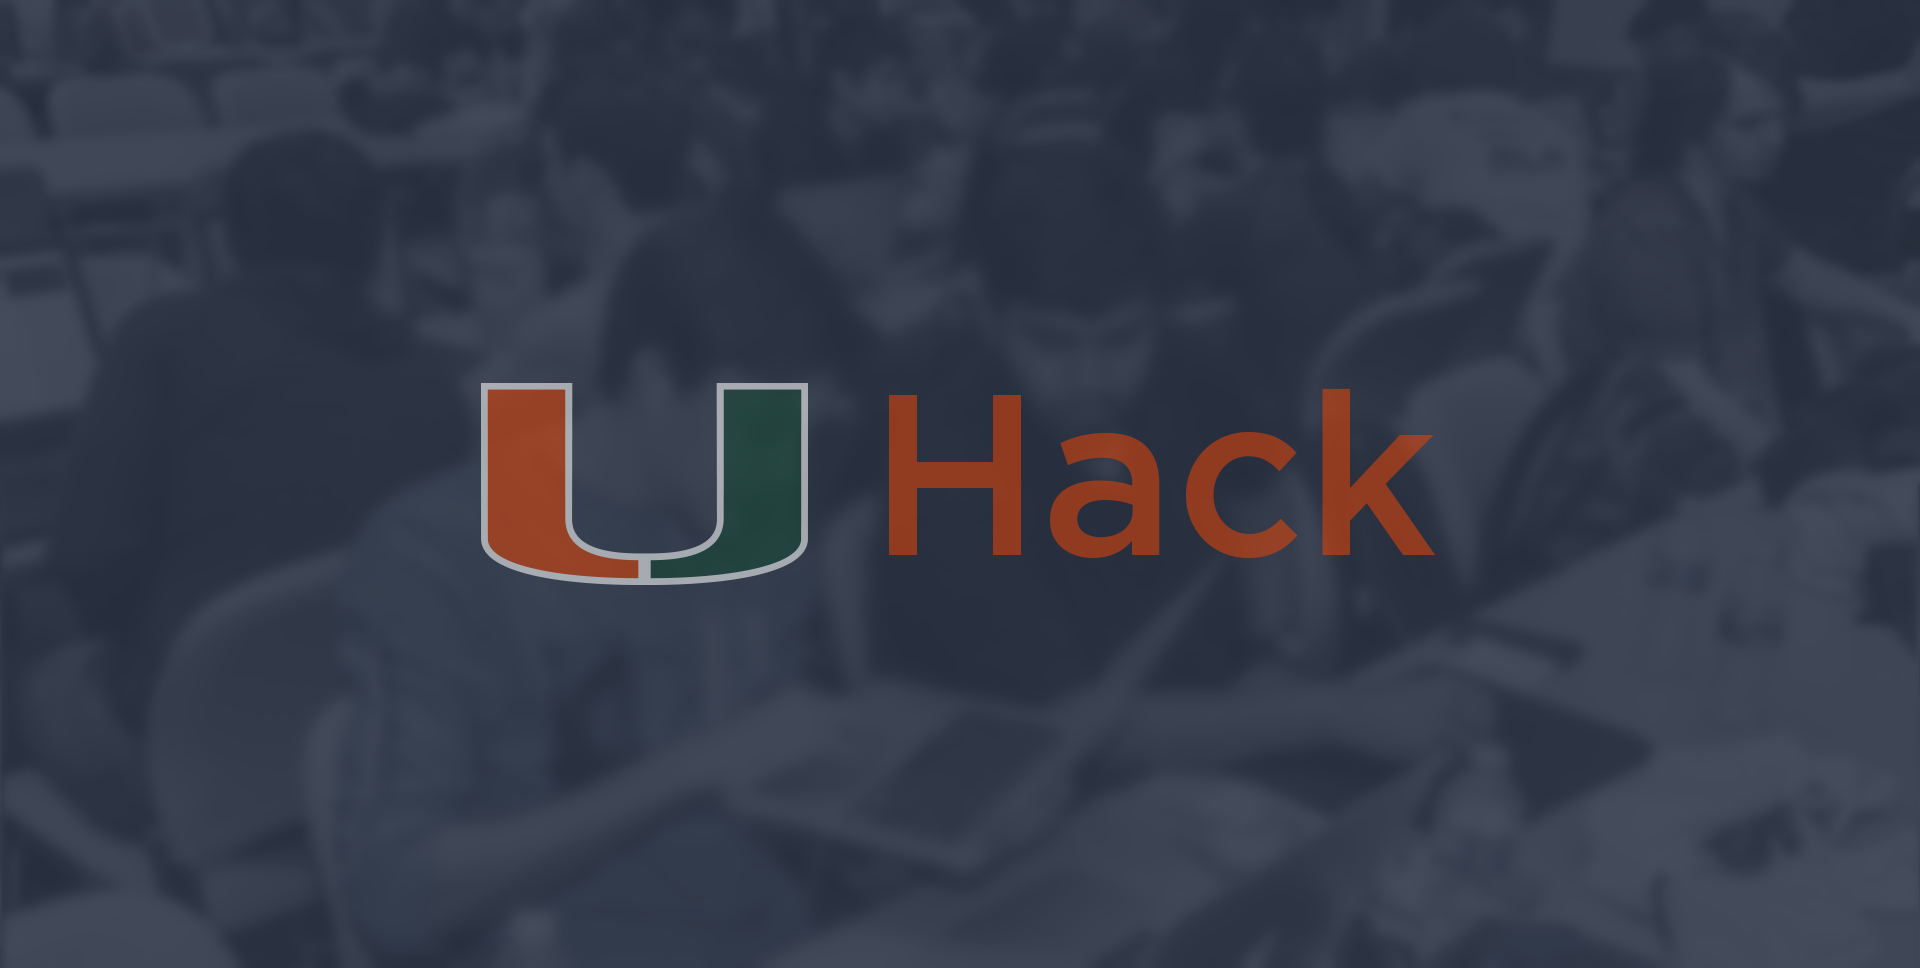 Blurred photograph of two male students working at a hackathon with the writing 'U Hack' in the foreground